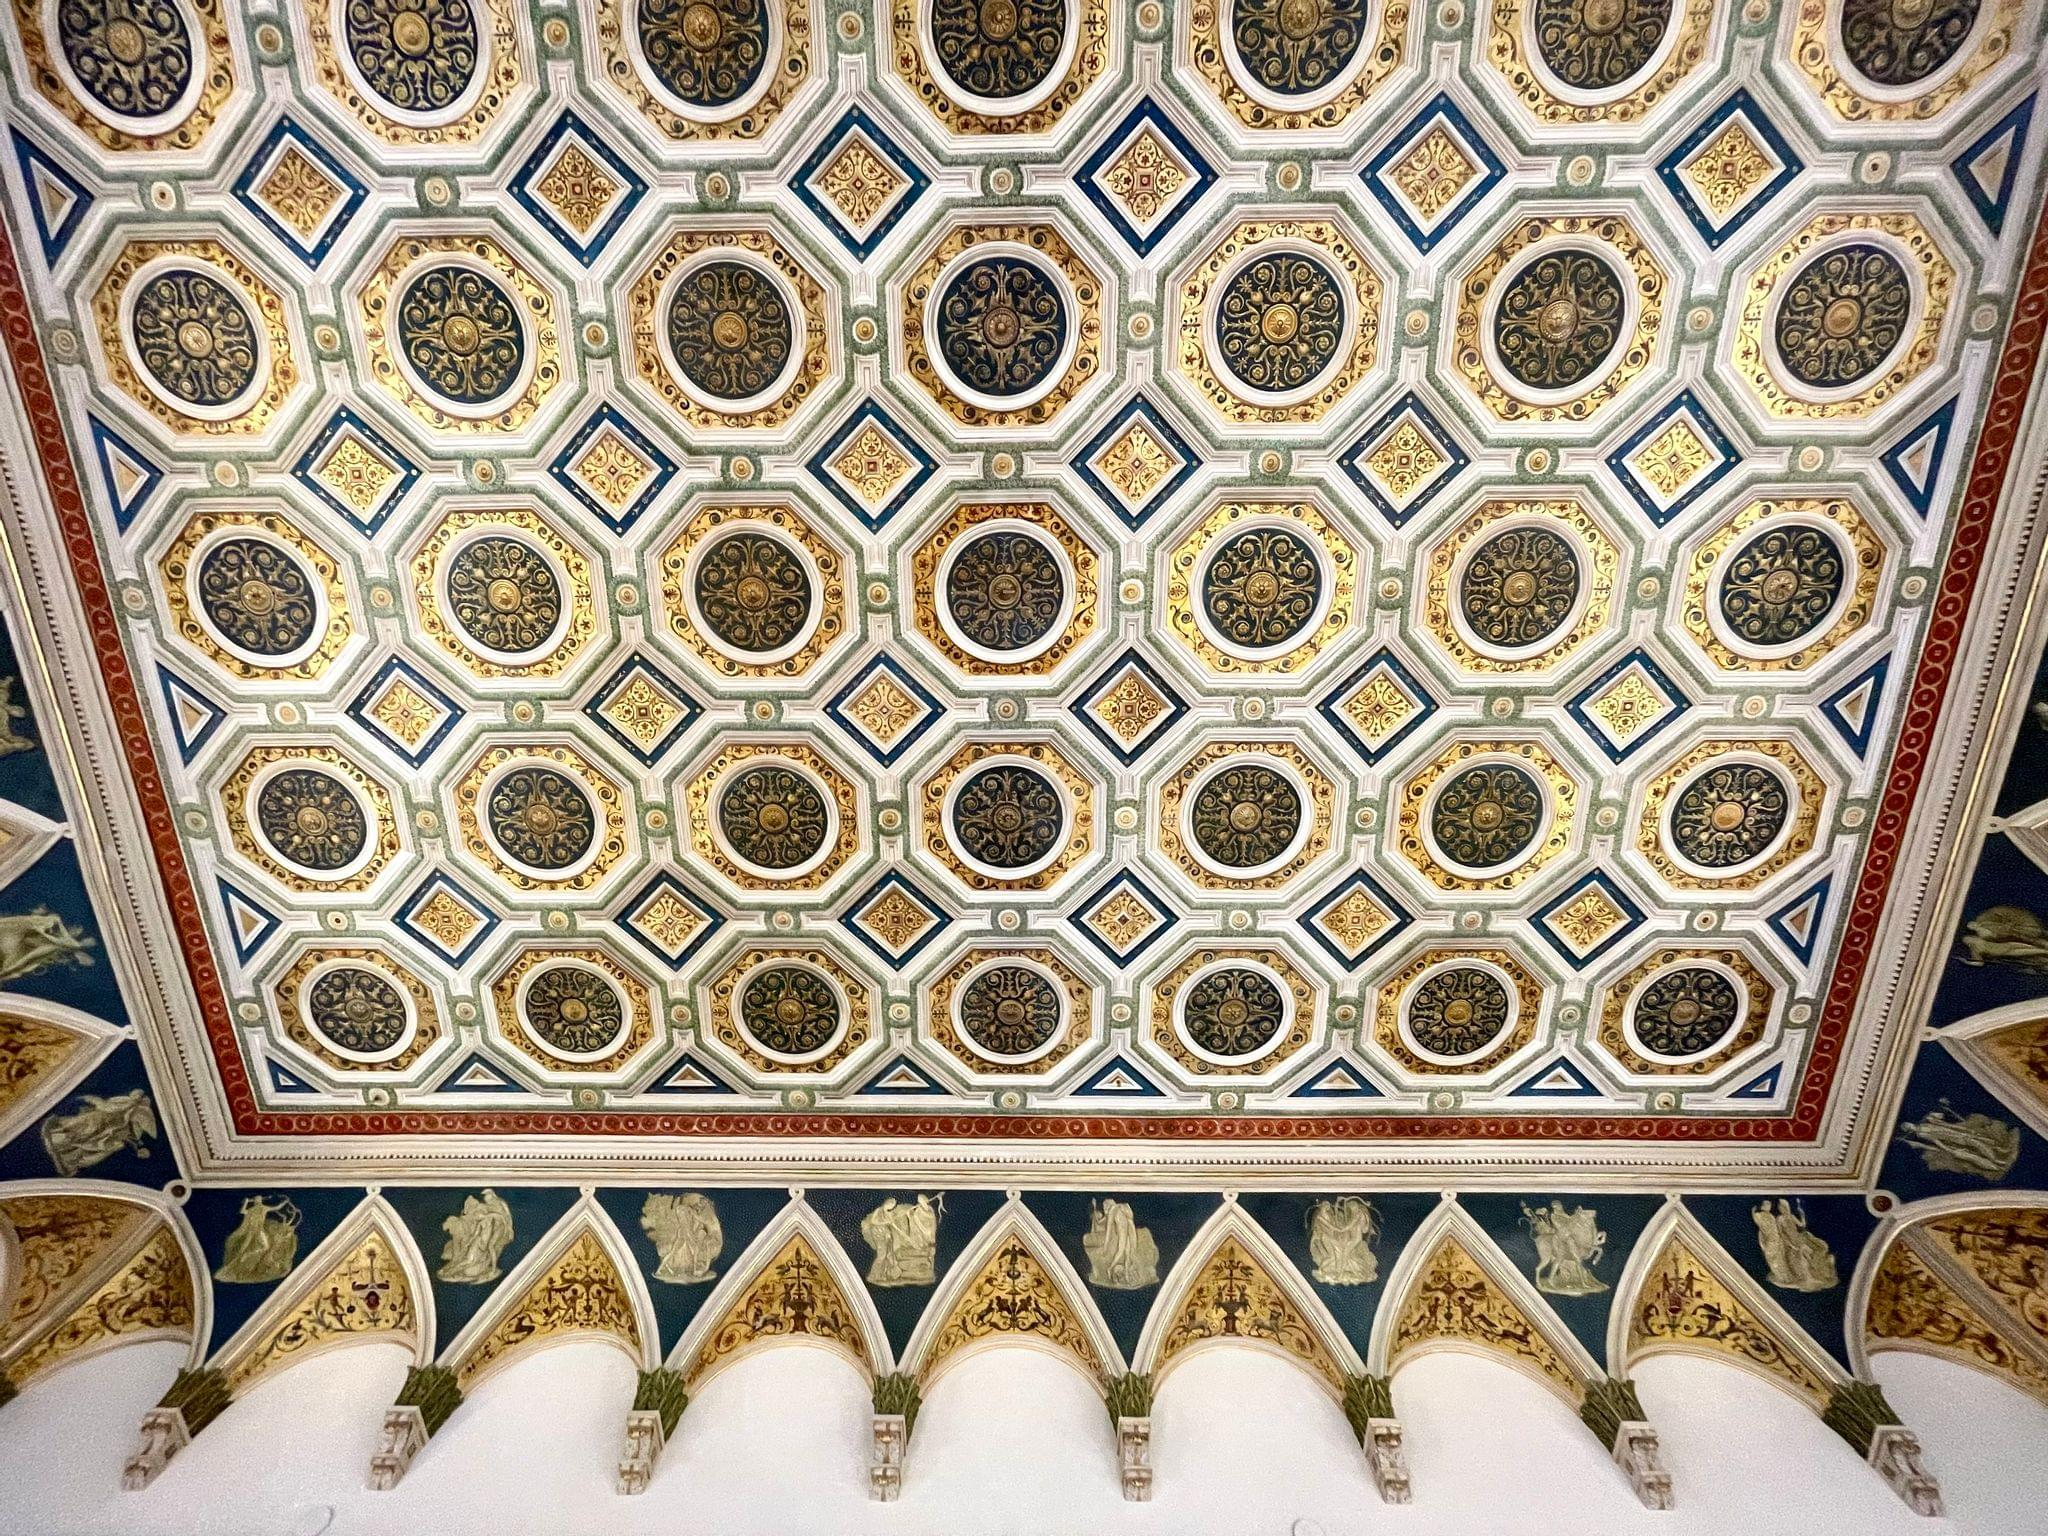 The restored hand-painted ceiling.